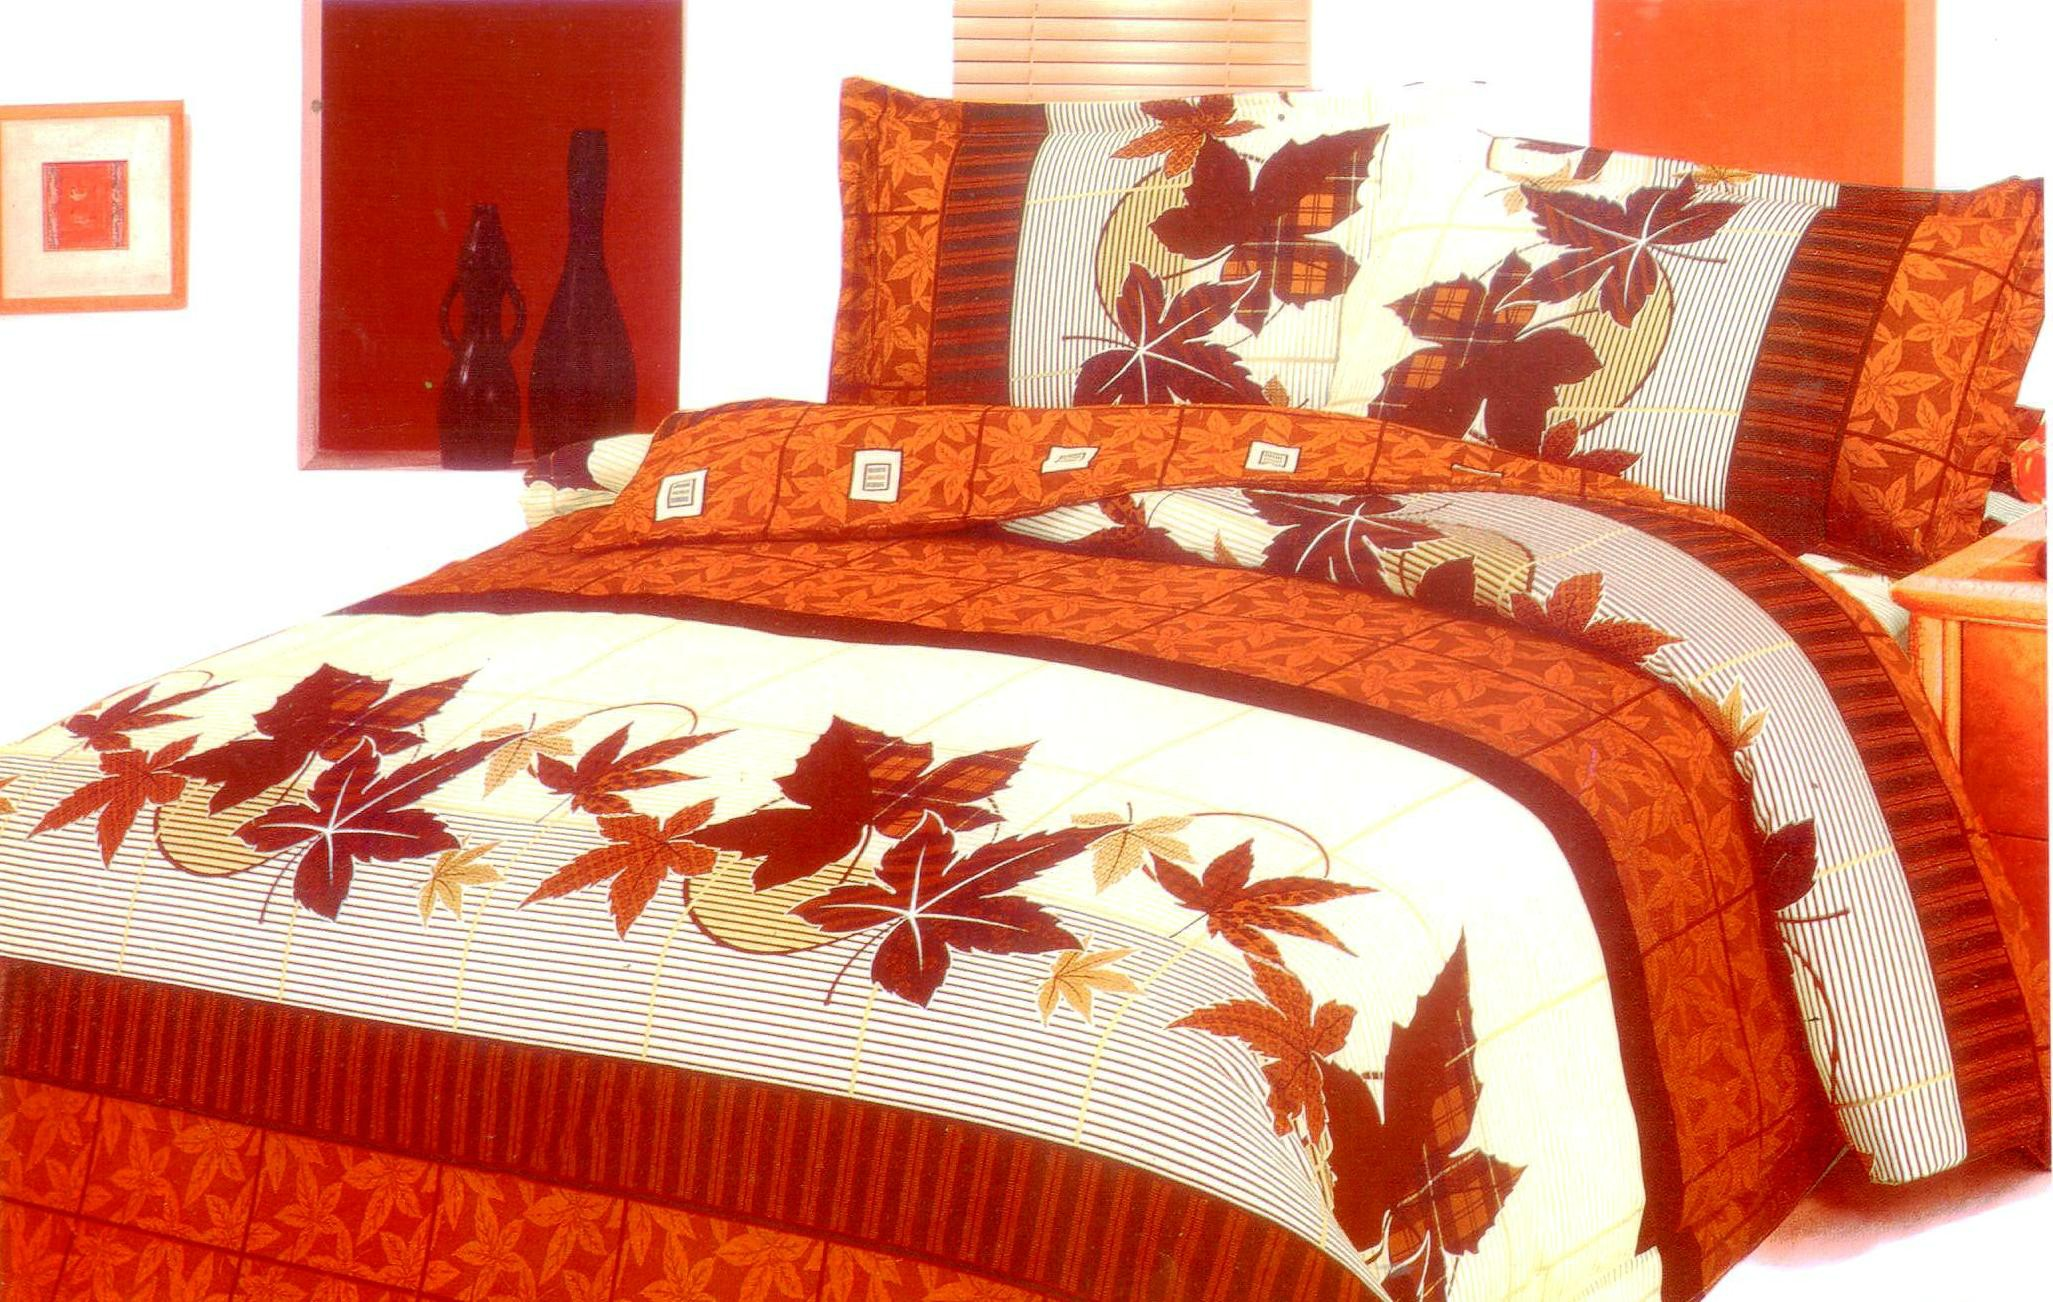 Awesome Bed Sheet Designs For Decorative And Amazing Looks